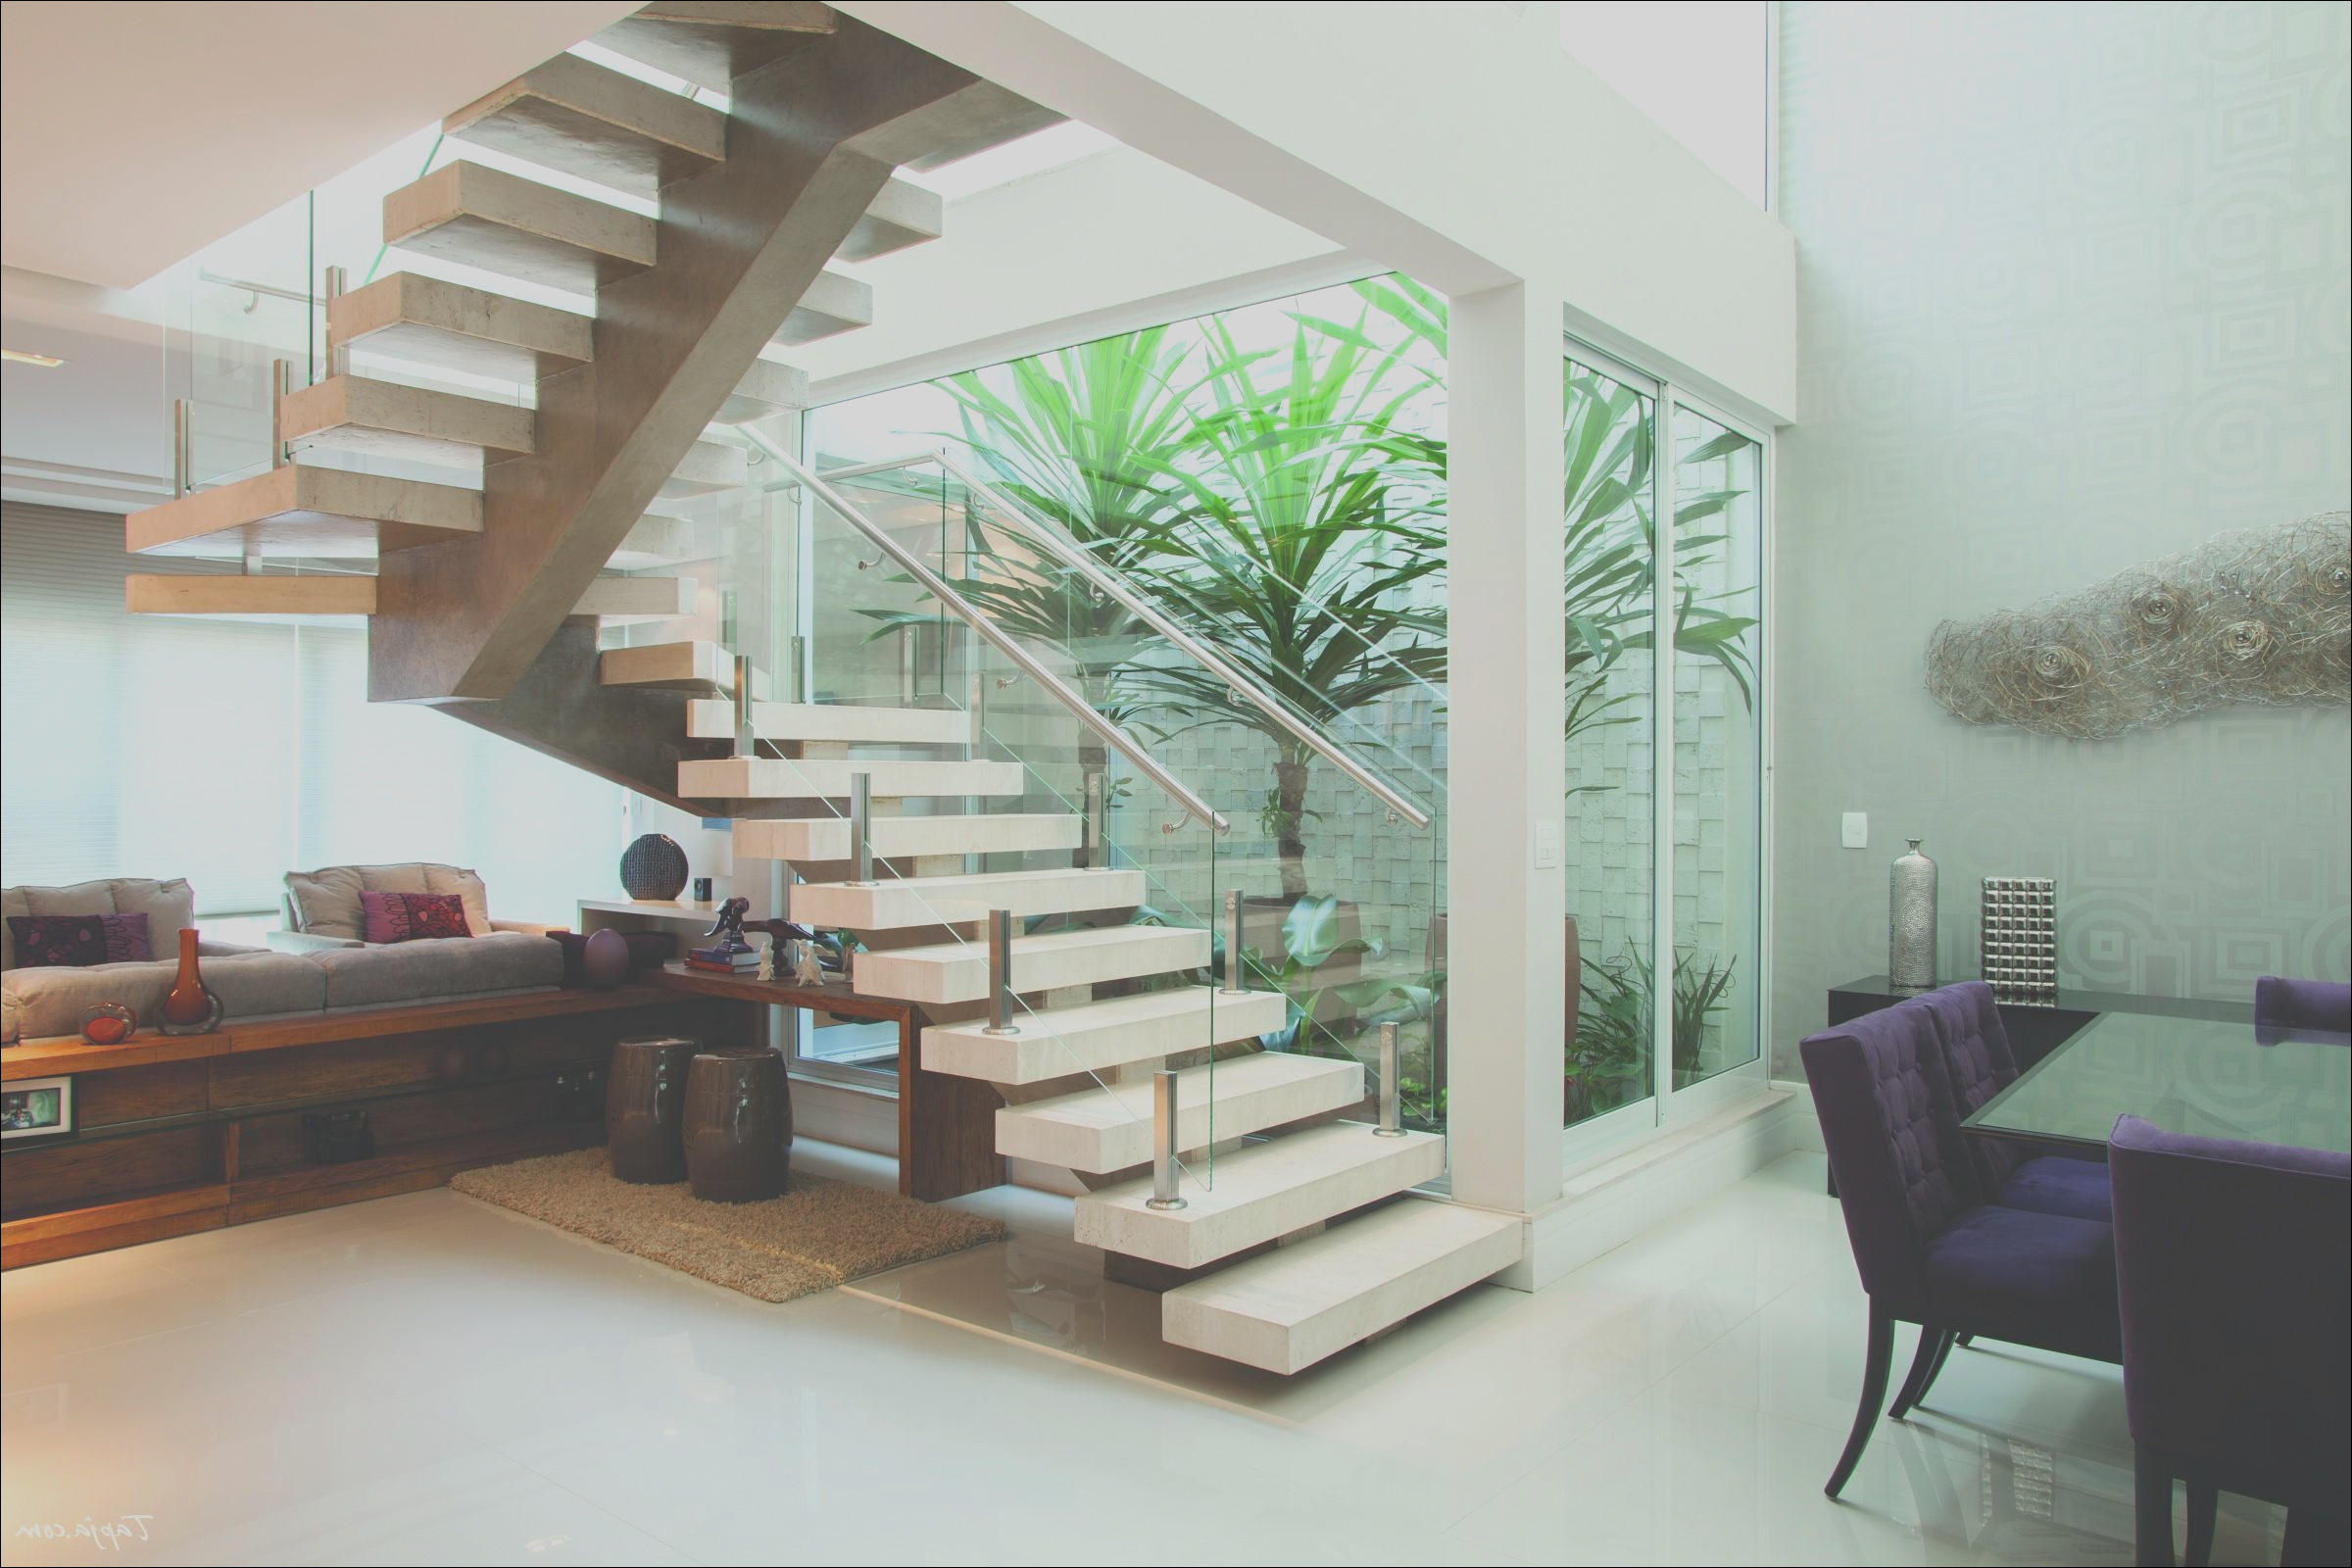 living room design under stairs contemporary apartment design with decorate a staircase beside small garden along with living room under stairs as well dining table set in the nearby